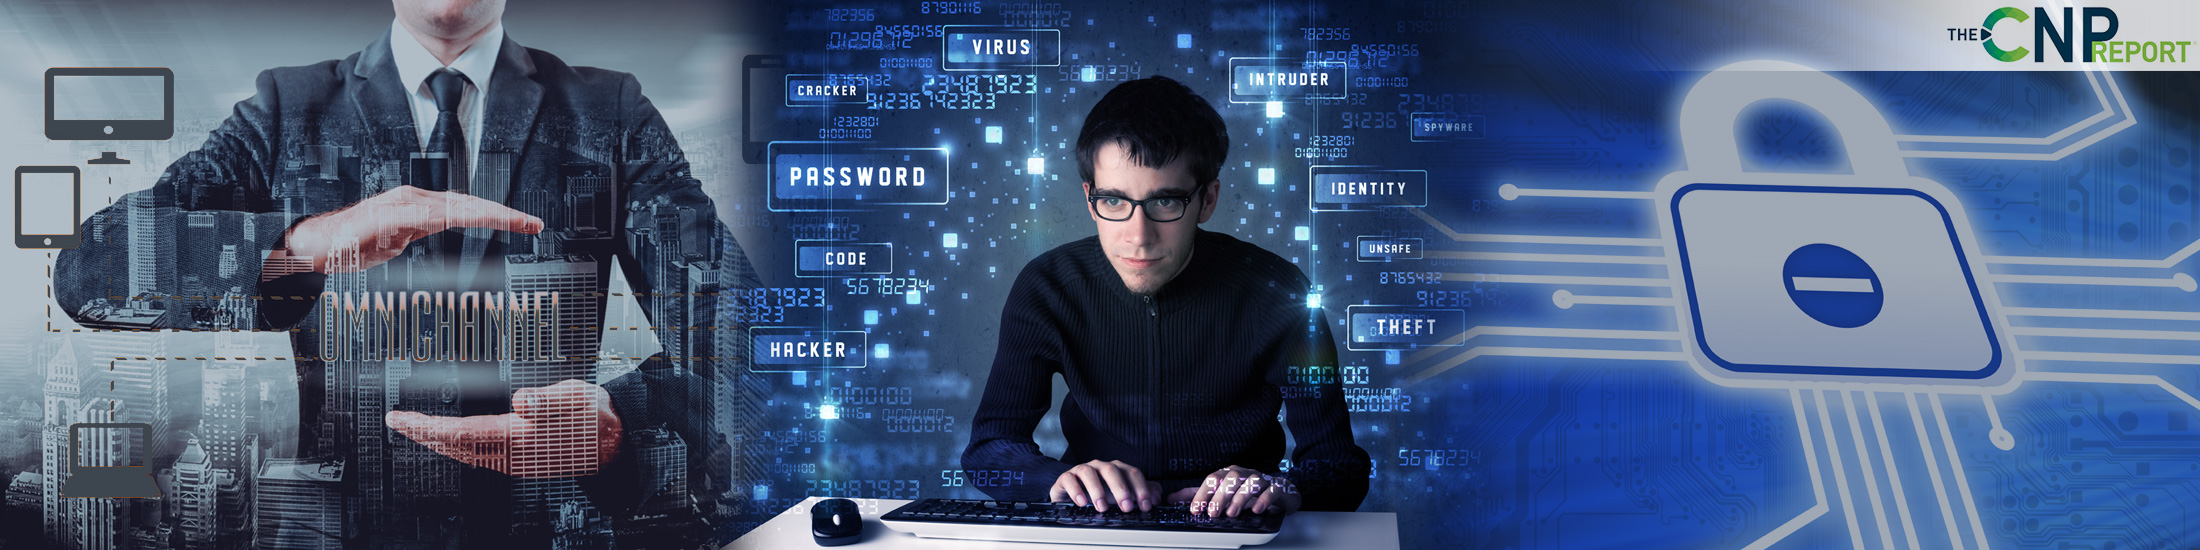 Online Retailers Top Target of Credential Stuffing Attacks Enabling ATO: Report